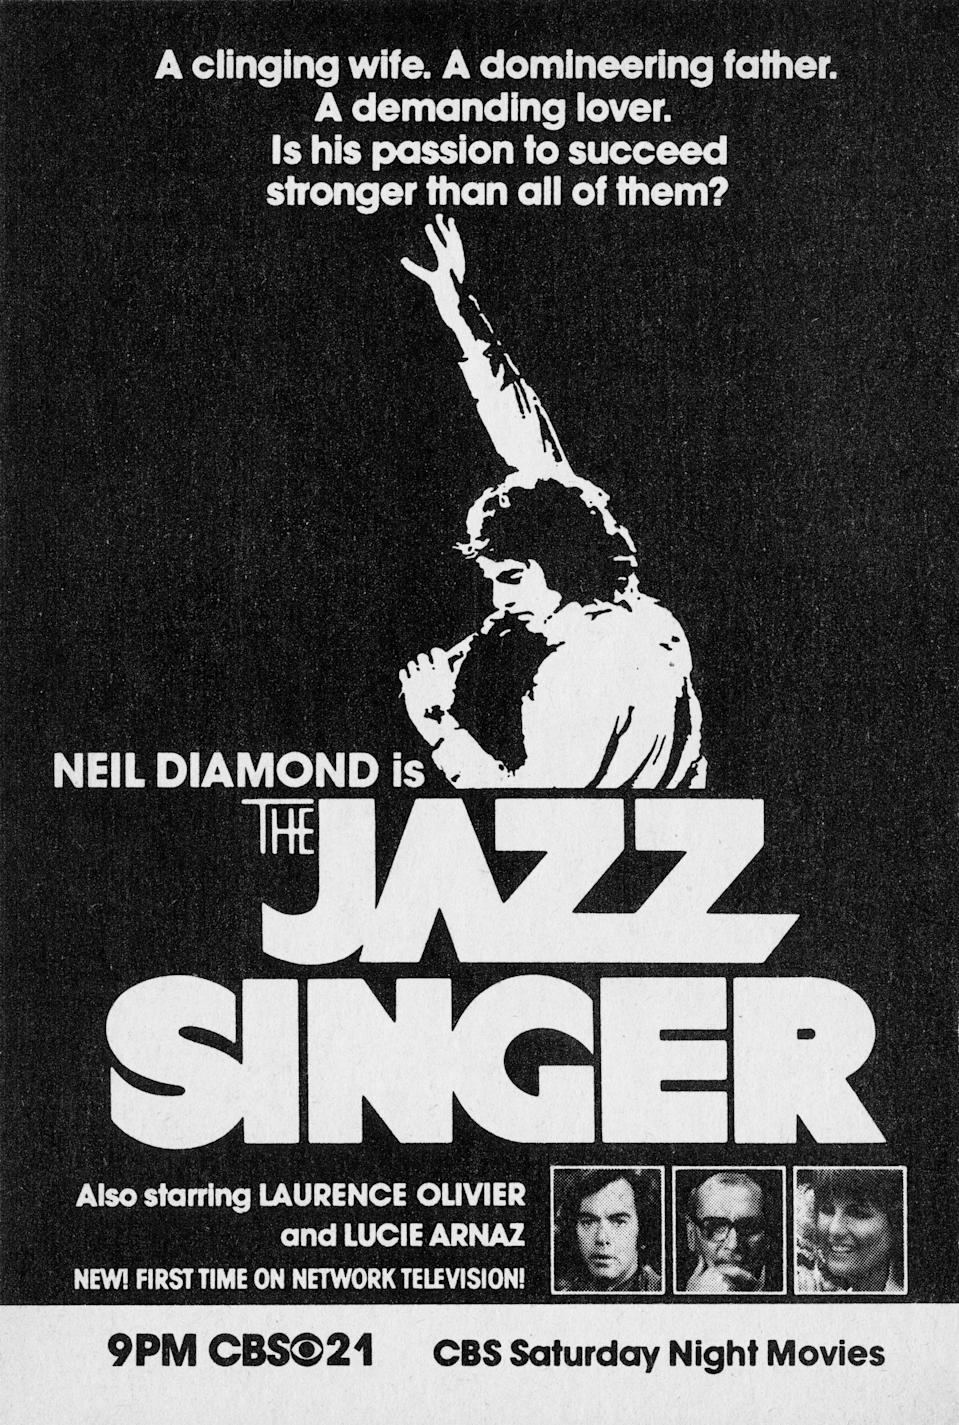 "NEW YORK - MARCH 5: CBS Television advertisement as appeared in the March 5, 1983 issue of TV Guide magazine. An ad for a Saturday night presentation of the theatrical movie ""The Jazz Singer"" starring Neil Diamond. (Photo by CBS via Getty Images)"